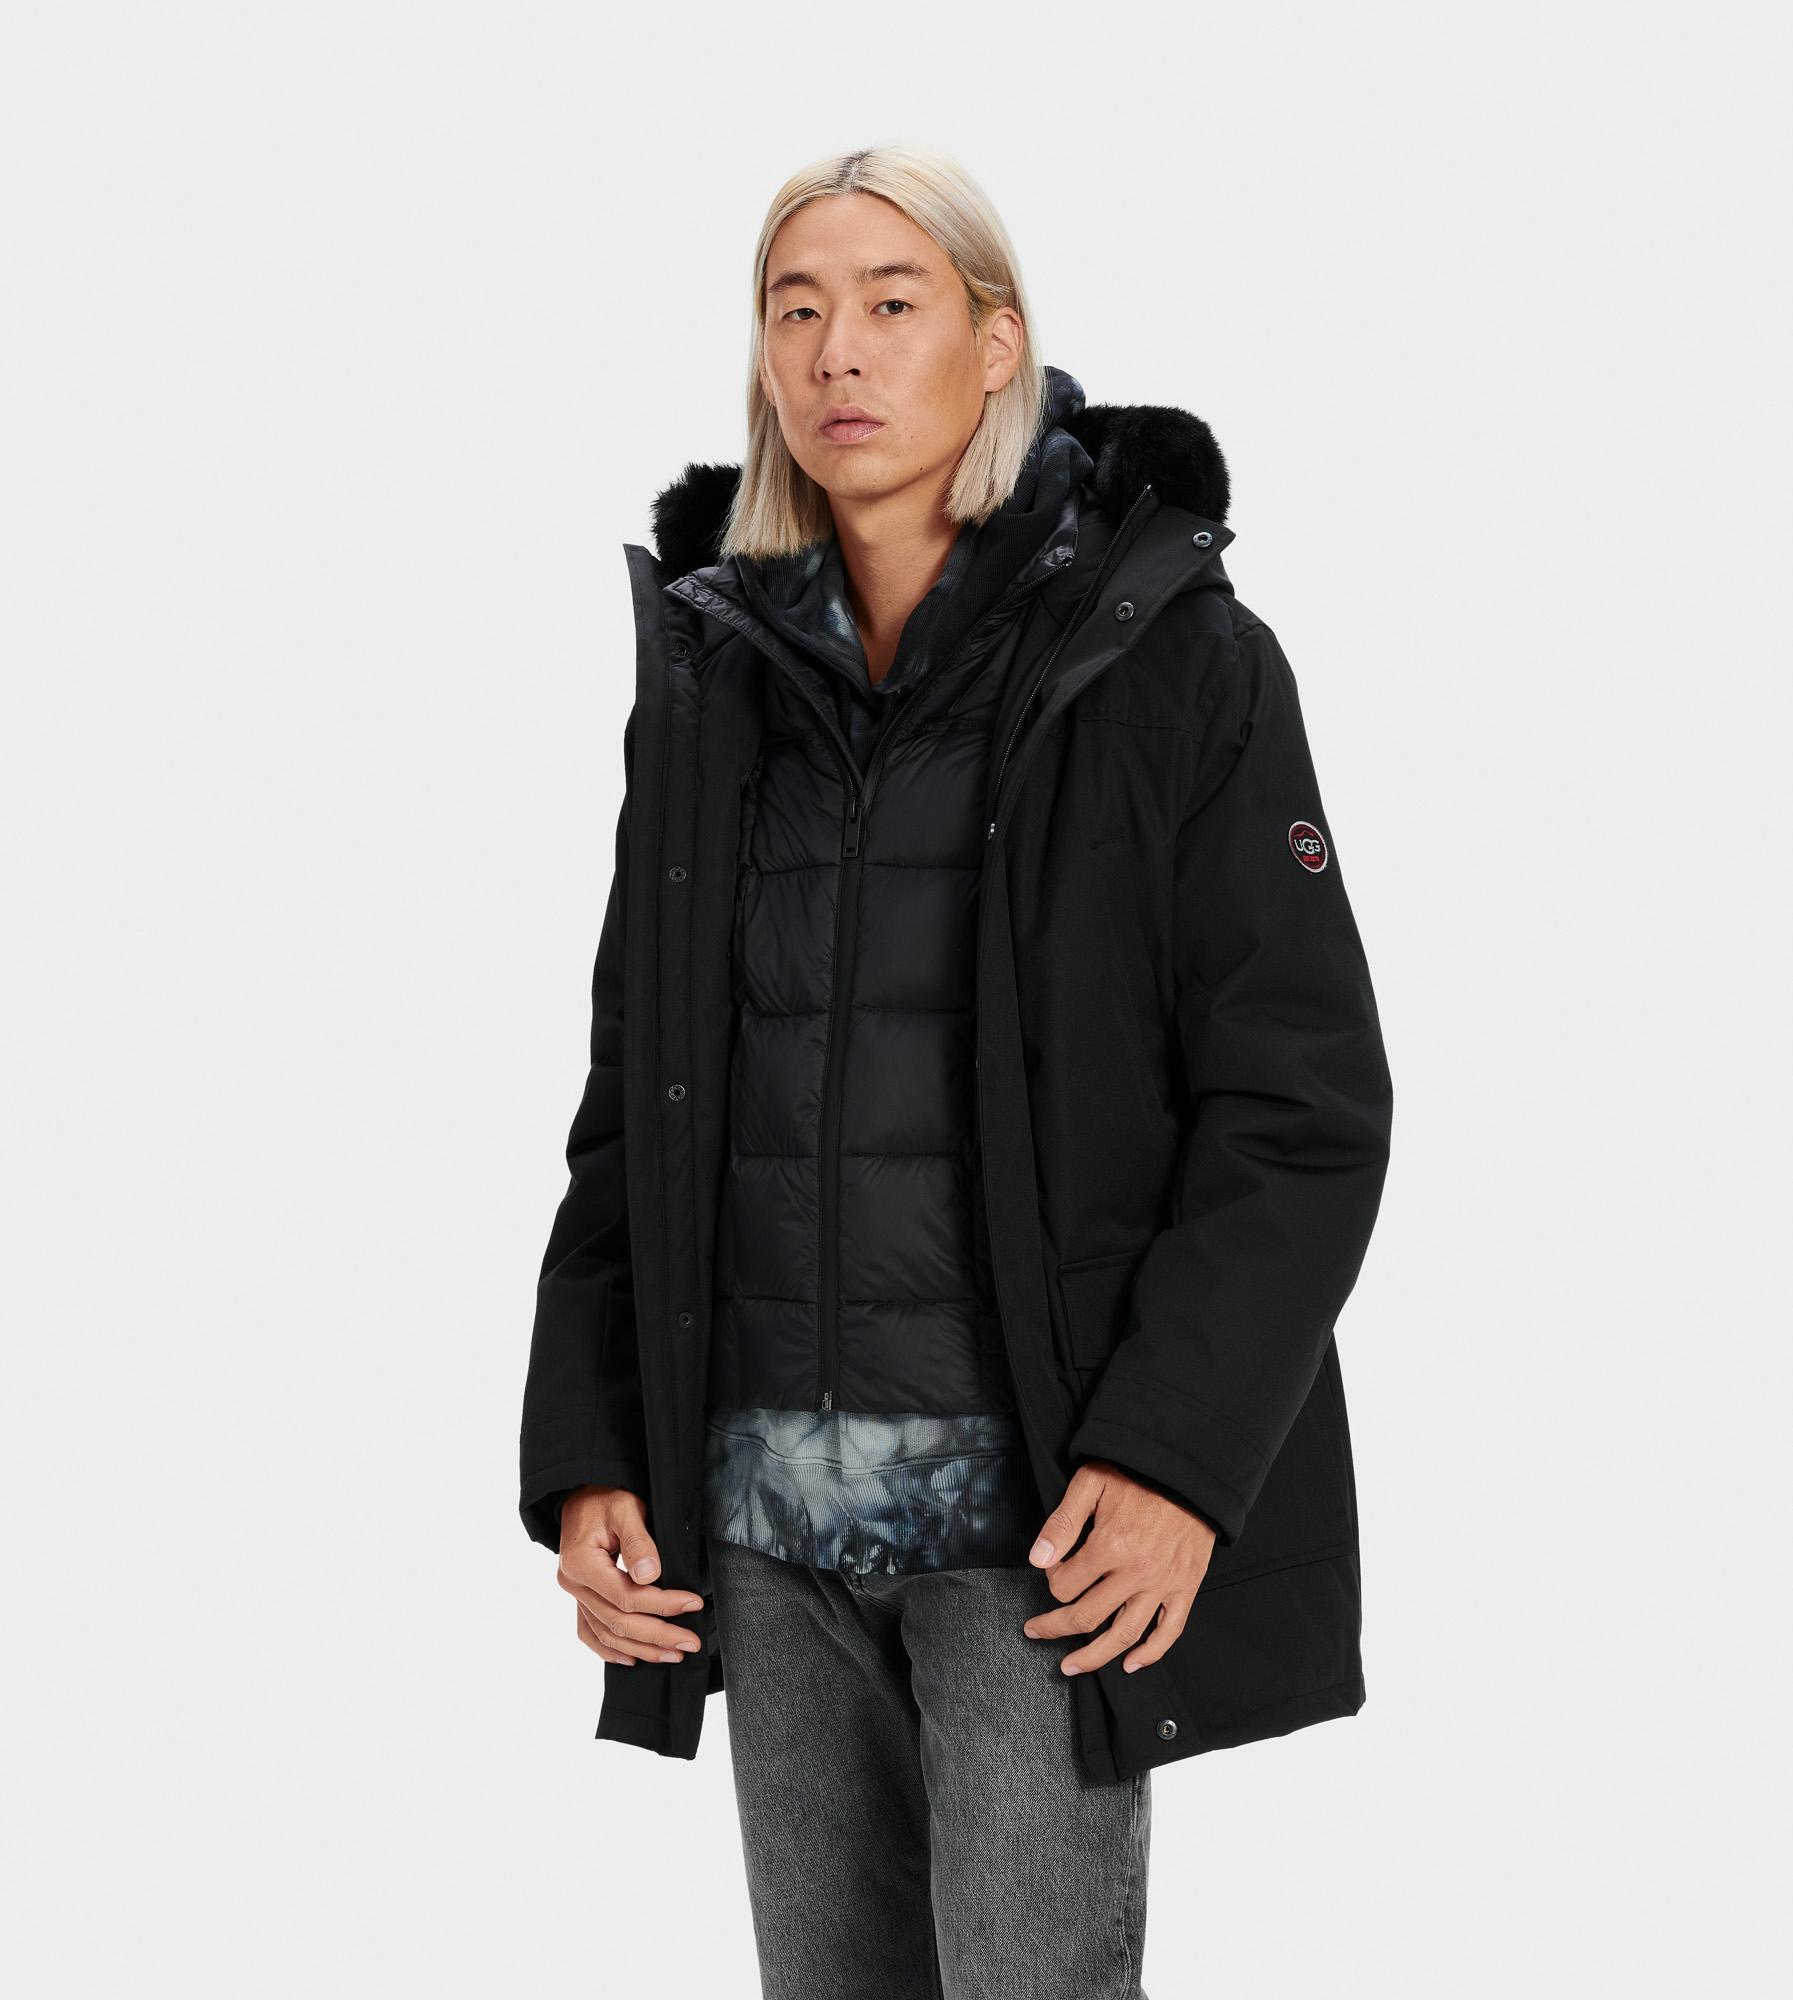 UGG Men's Butte Parka Nylon in Black, Size S Our most serious men's cold-weather coat, the Butte parka is made for temperatures as low as -31.4C (-24.52 F). This down-filled jacket features a water-resistant shell to keep you warm and dry. For added protection from the elements, it includes a detachable down vest, removable fur trim hood, and fleece-lined pockets. Down-filled, waterproof tech parka with detachable nylon down vest. Waterproof Woven Shell: 85% Polyester, 15% Cotton. AATCC127 Waterproof tested. Temperature rated at -31.4° Celsius. Fleece pocket linings. Removable Toscana fur hood trim. Internal cell phone pocket. 34  center back length. Removable down vest liner: 25  center back length. Dry clean only. UGG Men's Butte Parka Nylon in Black, Size S